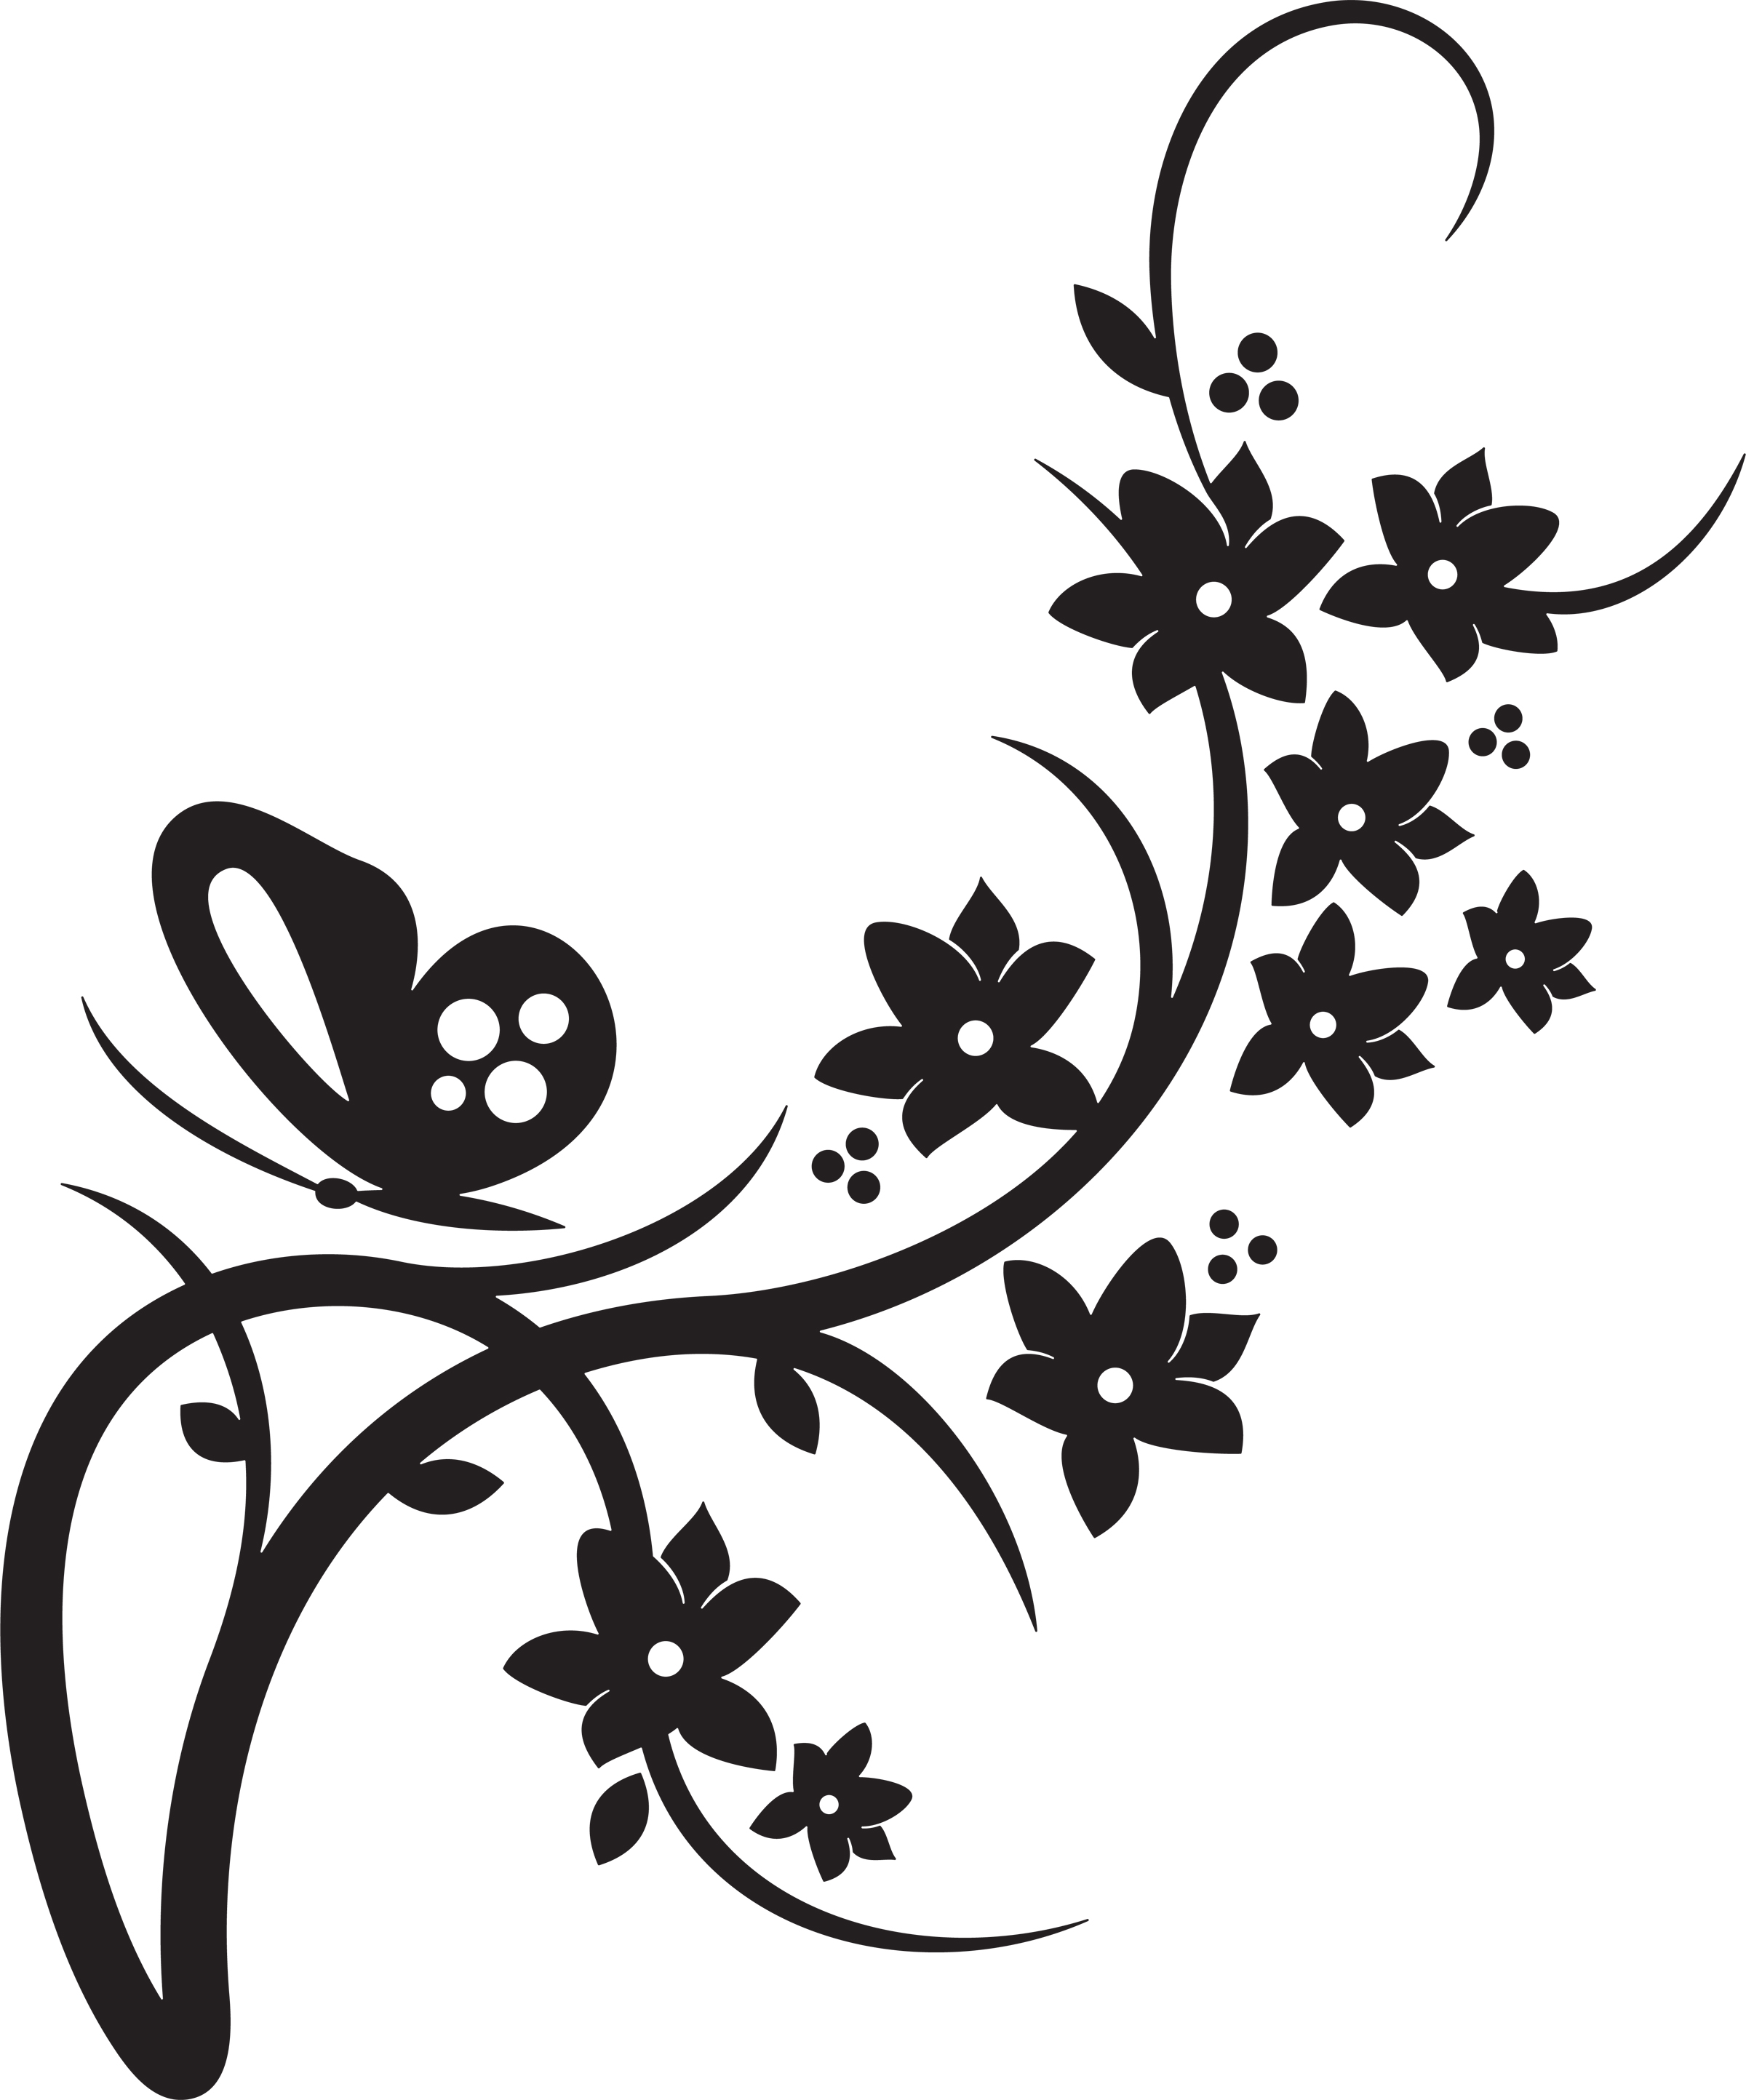 Clipart Flowers And Butterflies Border